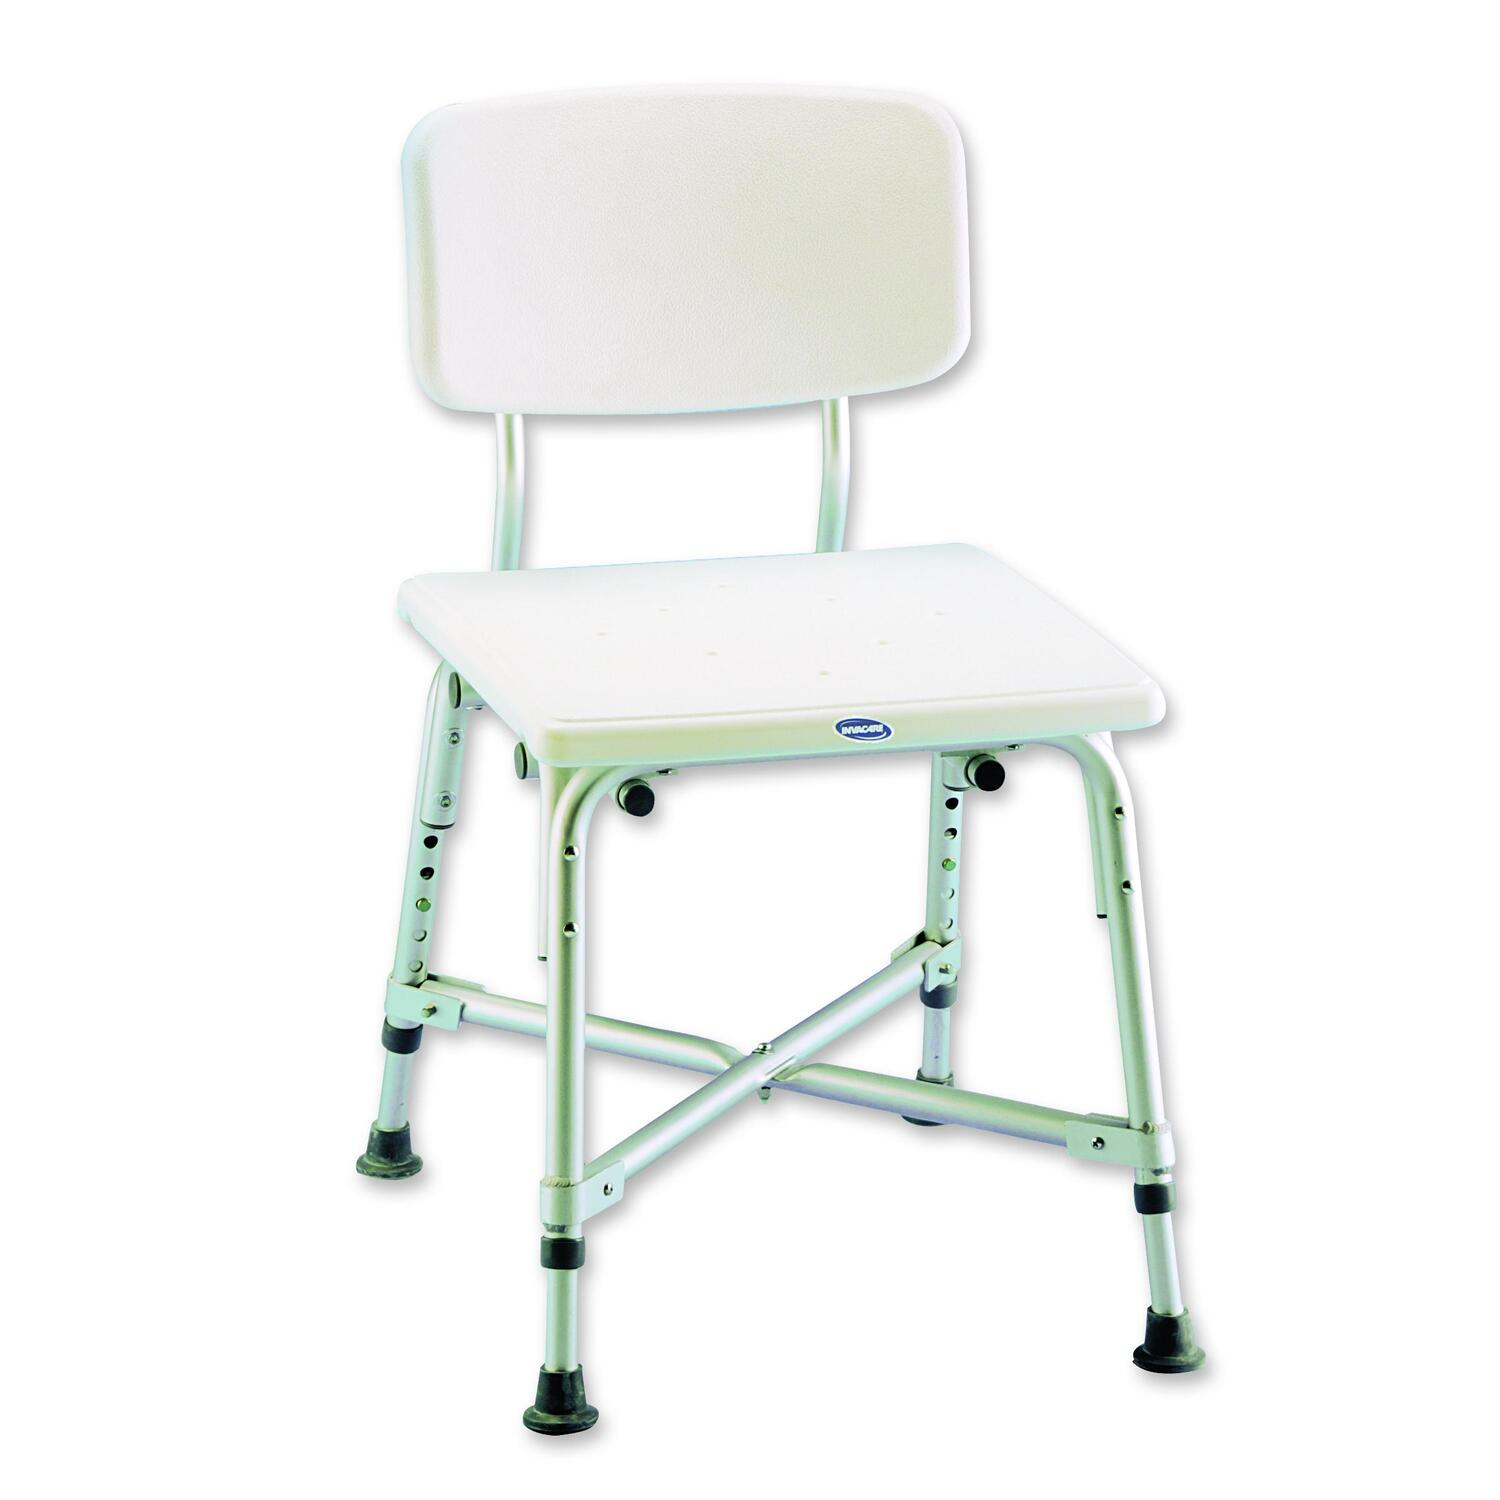 Invacare Invacareu00ae Bariatric Shower Chair by OJ Commerce ...